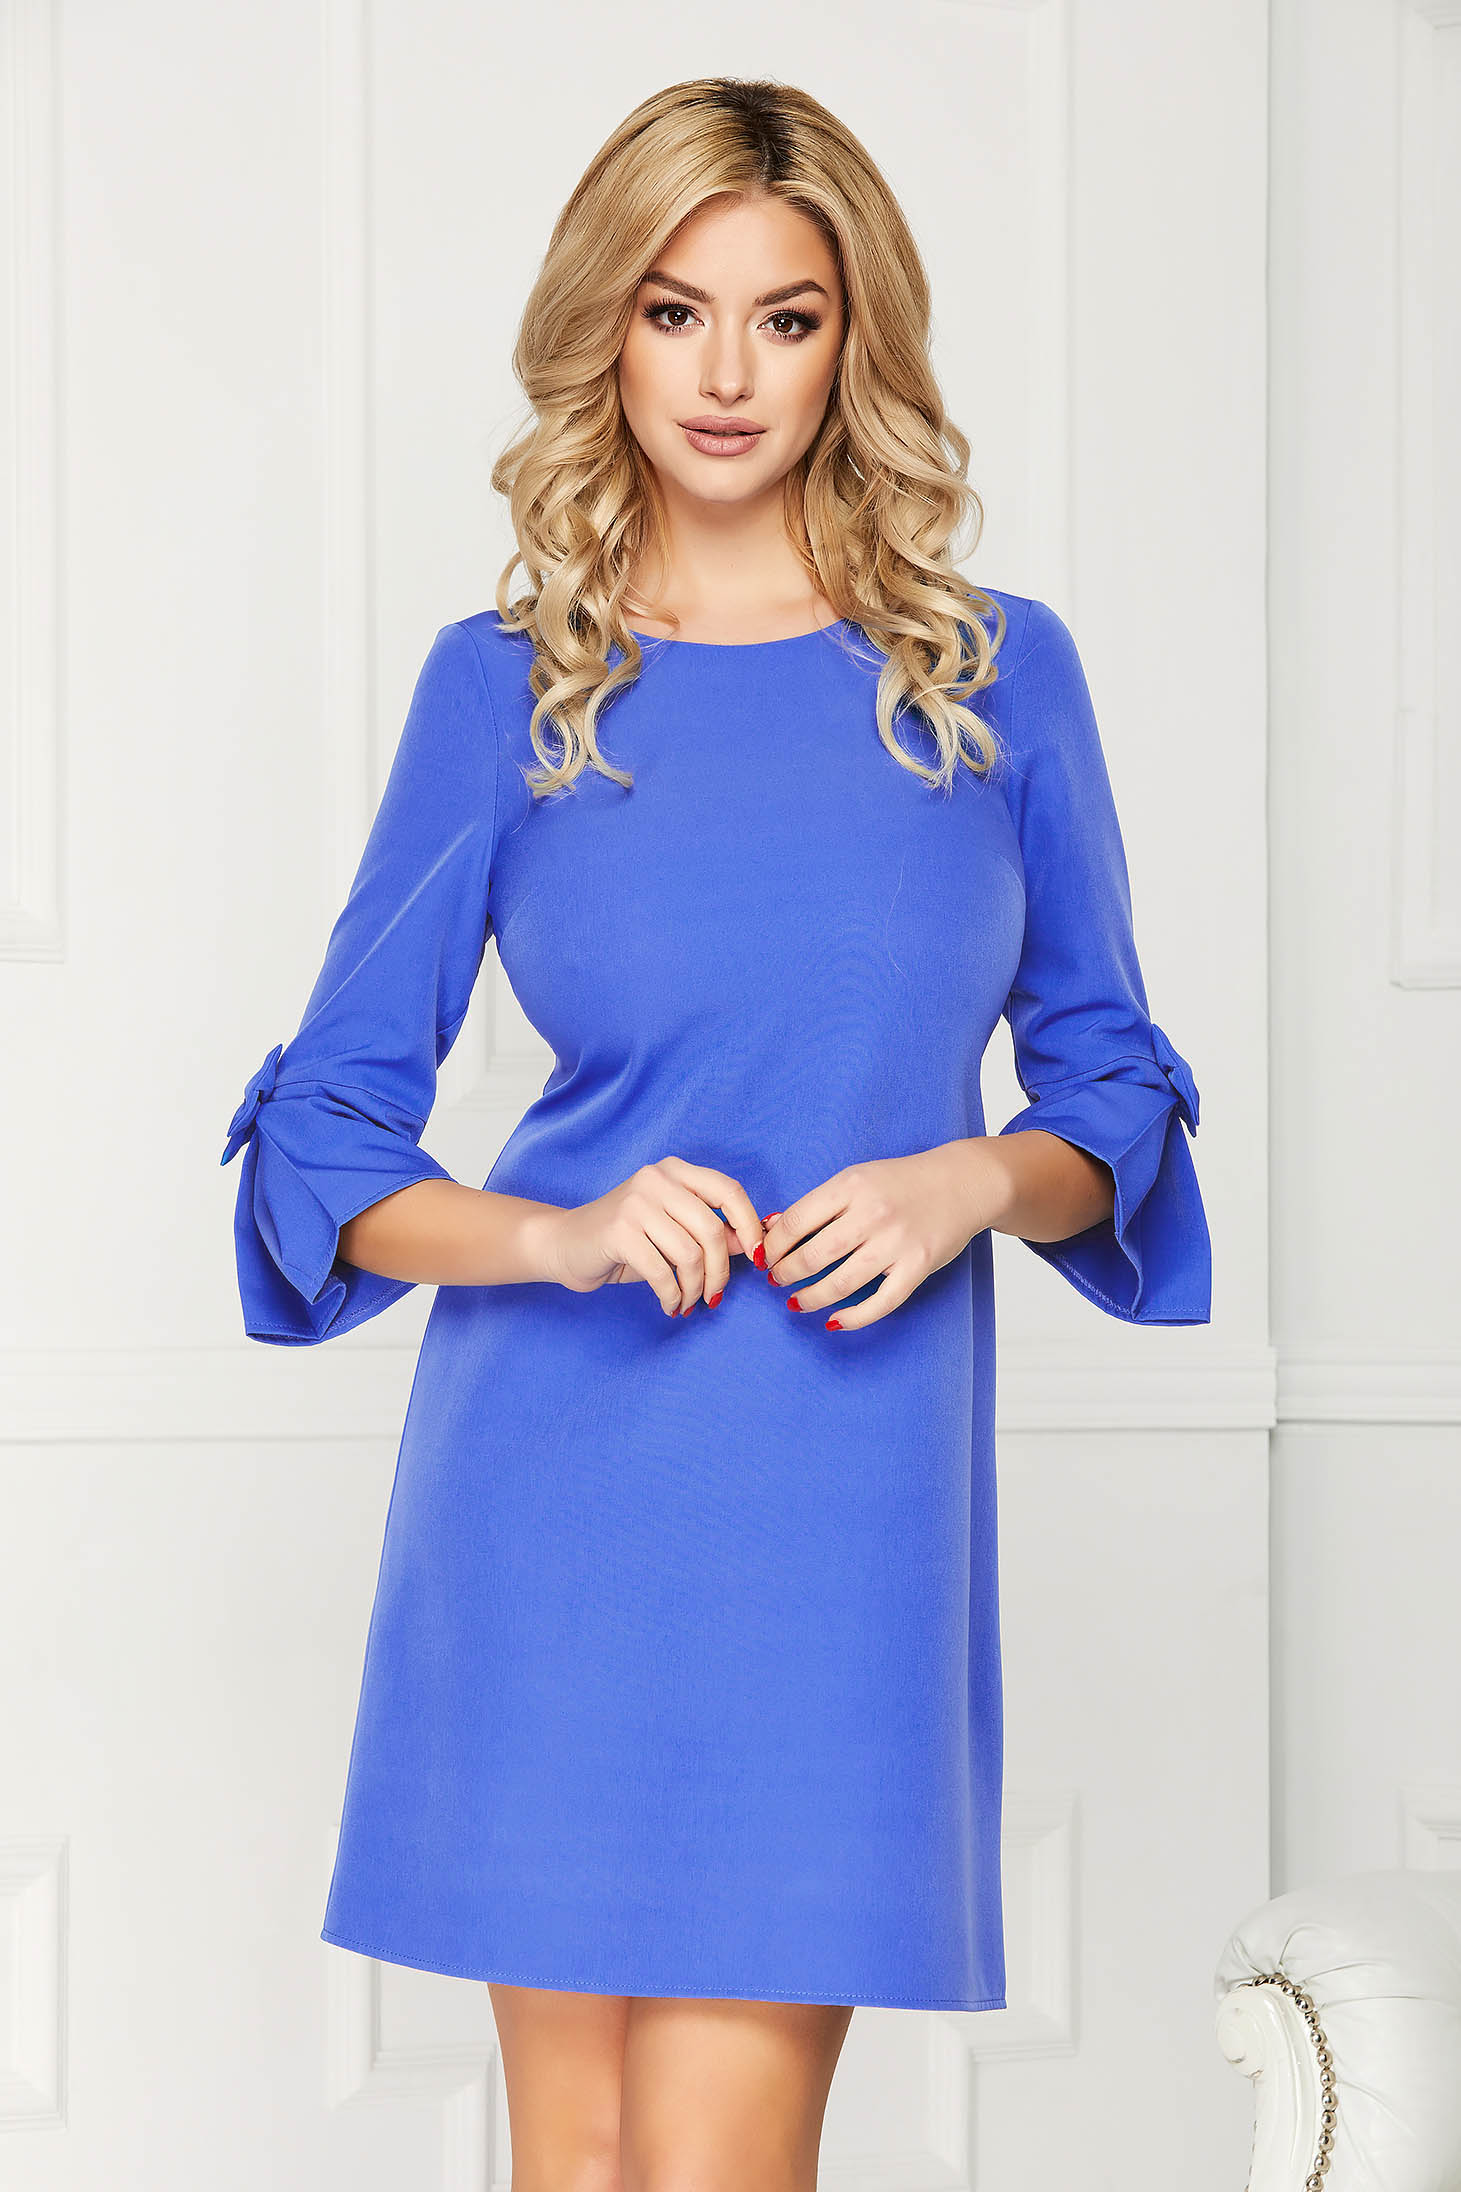 Blue elegant dress straight short cut cloth fabric with 3/4 sleeves